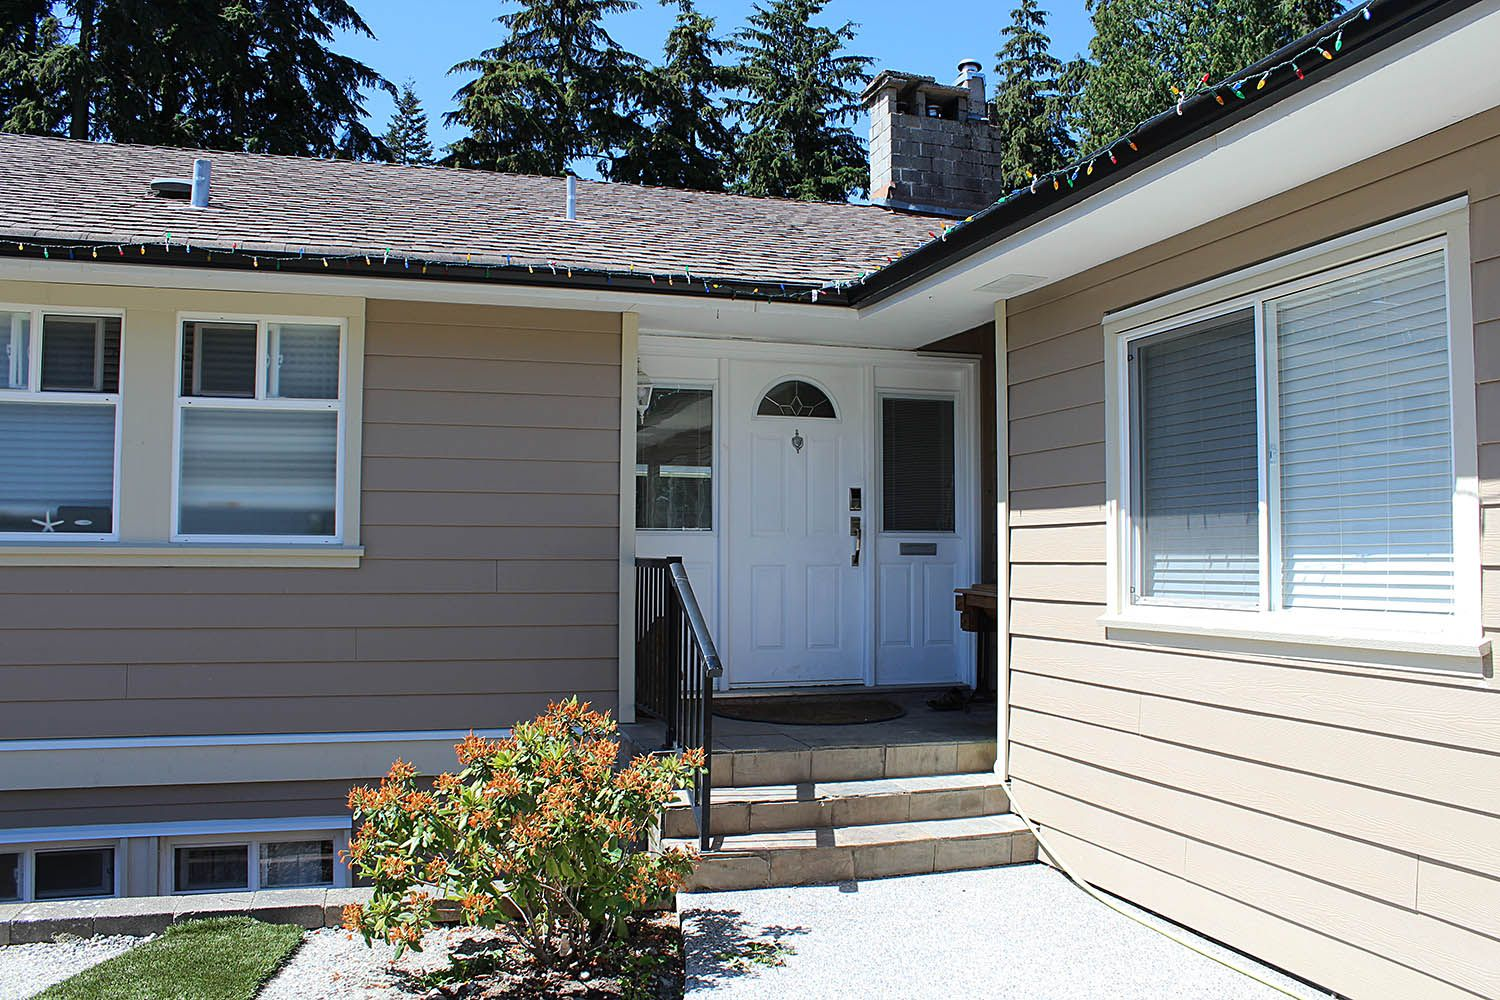 Siding Renovation Most Popular Types Of Siding For Your Home In 2020 Siding Companies Types Of Siding Renovations